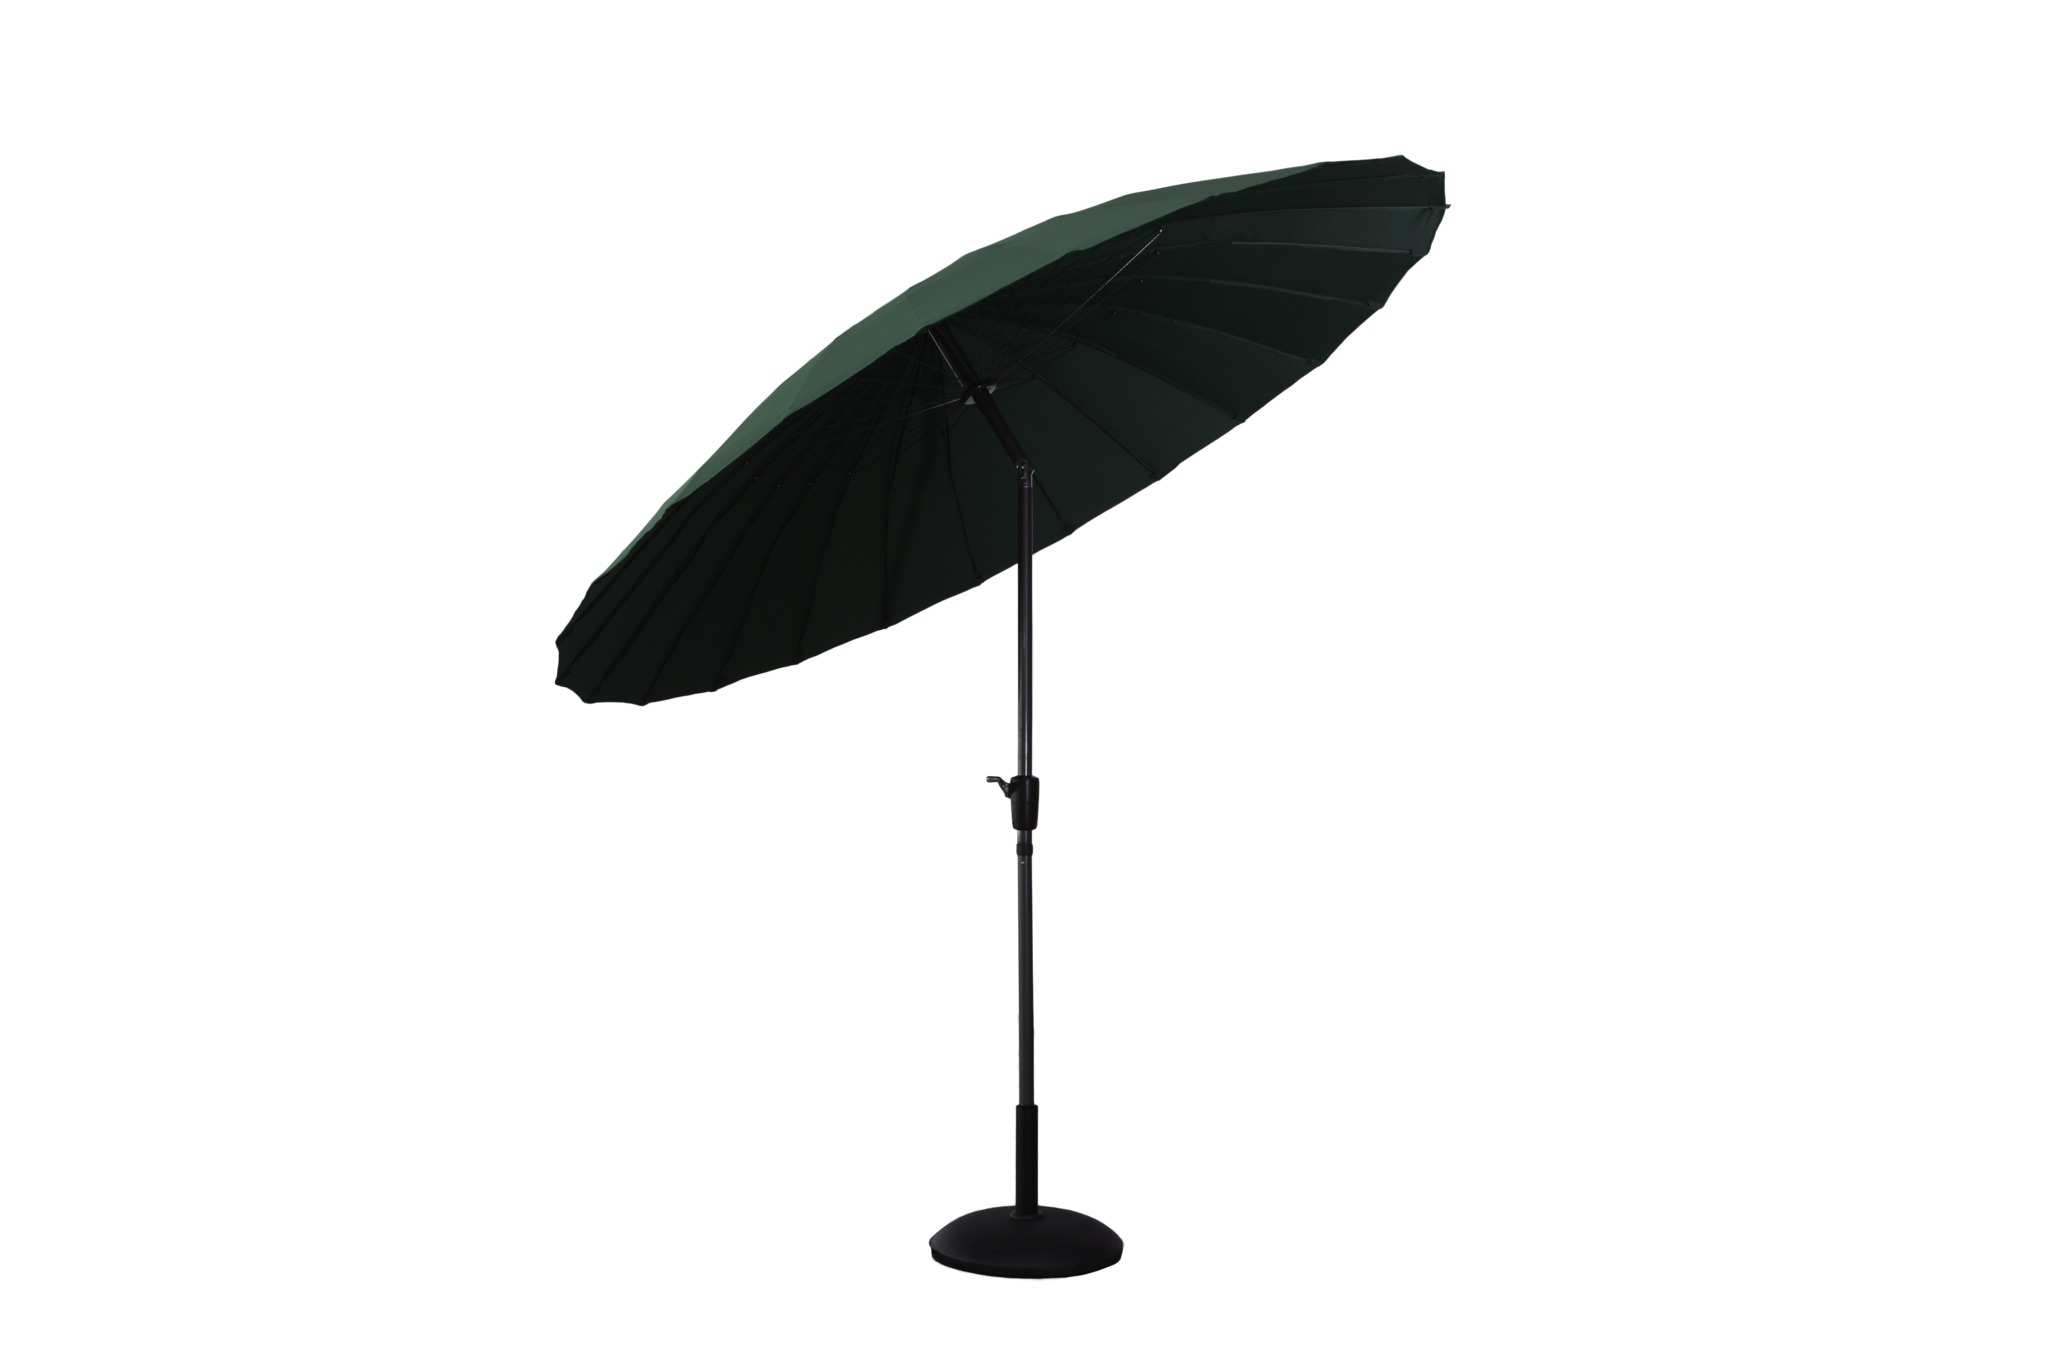 Parasol Shanghai Gardman Shanghai Parasol With Cover Outdoor Umbrella